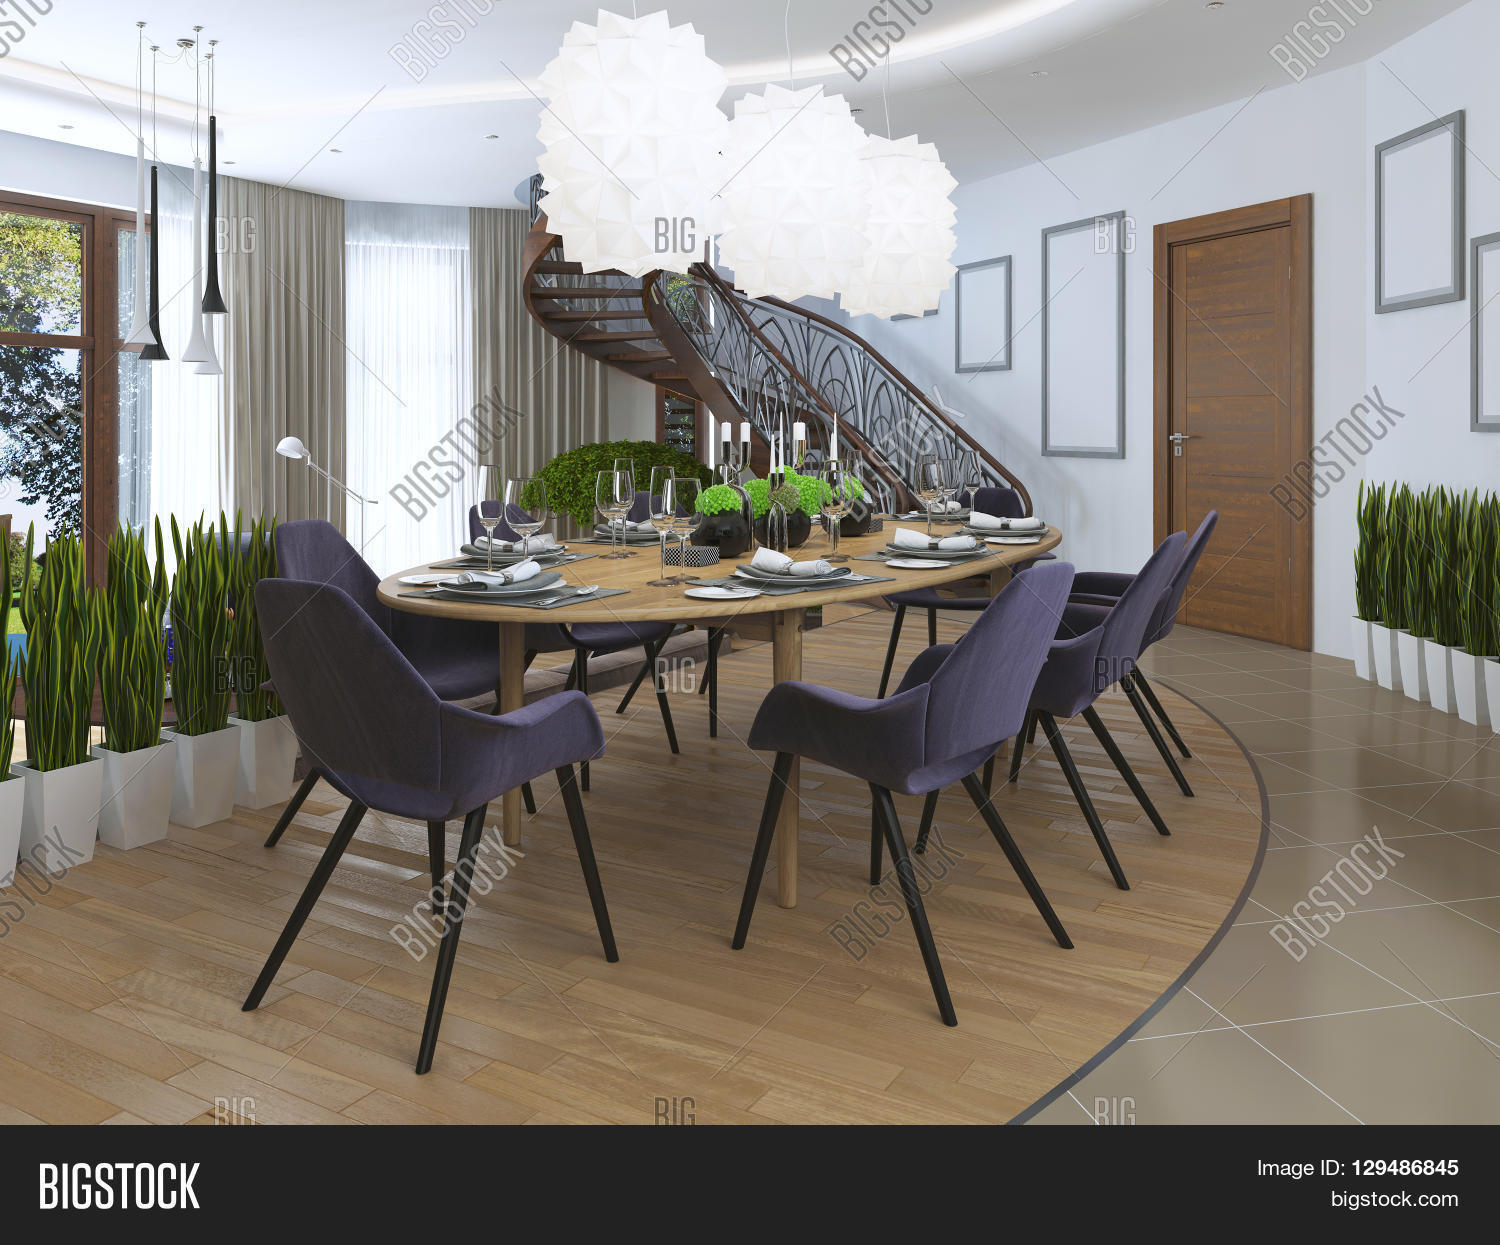 luxury dining room in a contemporary style with a large dining luxury dining room in a contemporary style with a large dining table for eight people